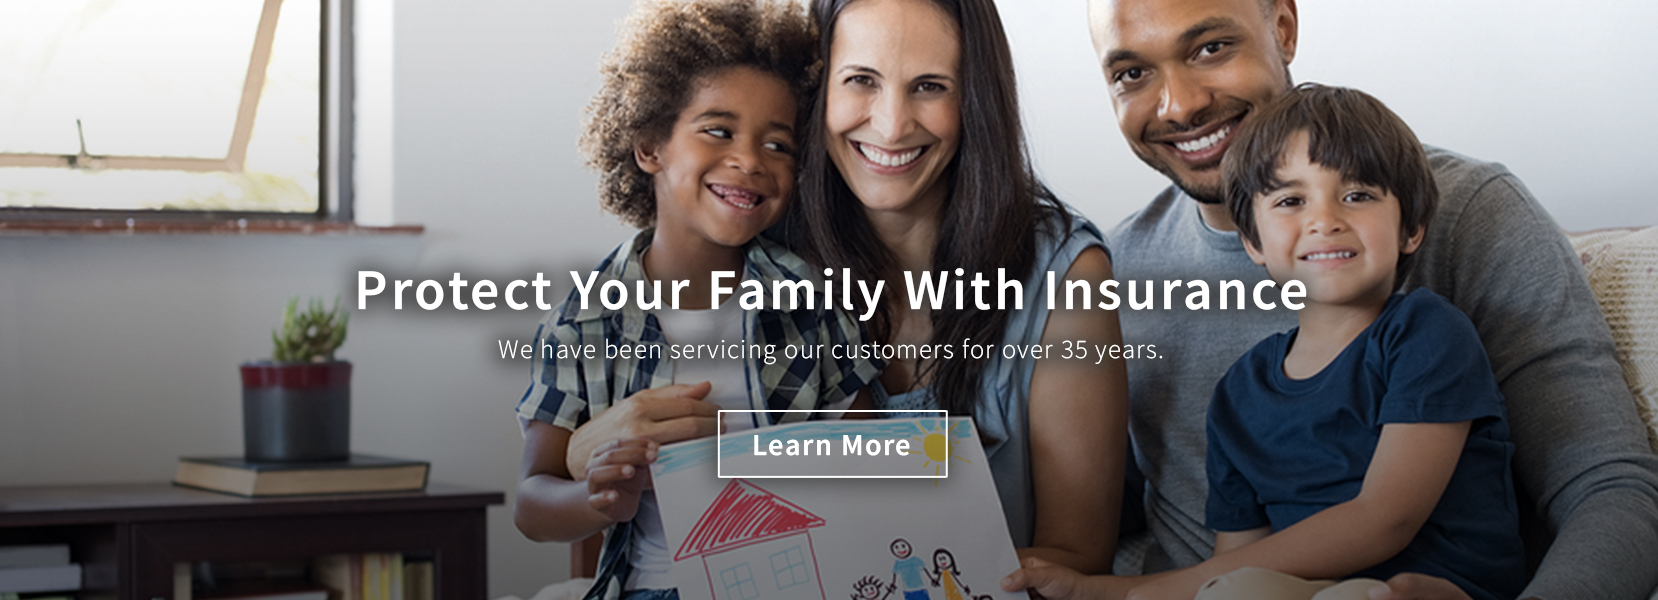 Protect Your Family with Insurance